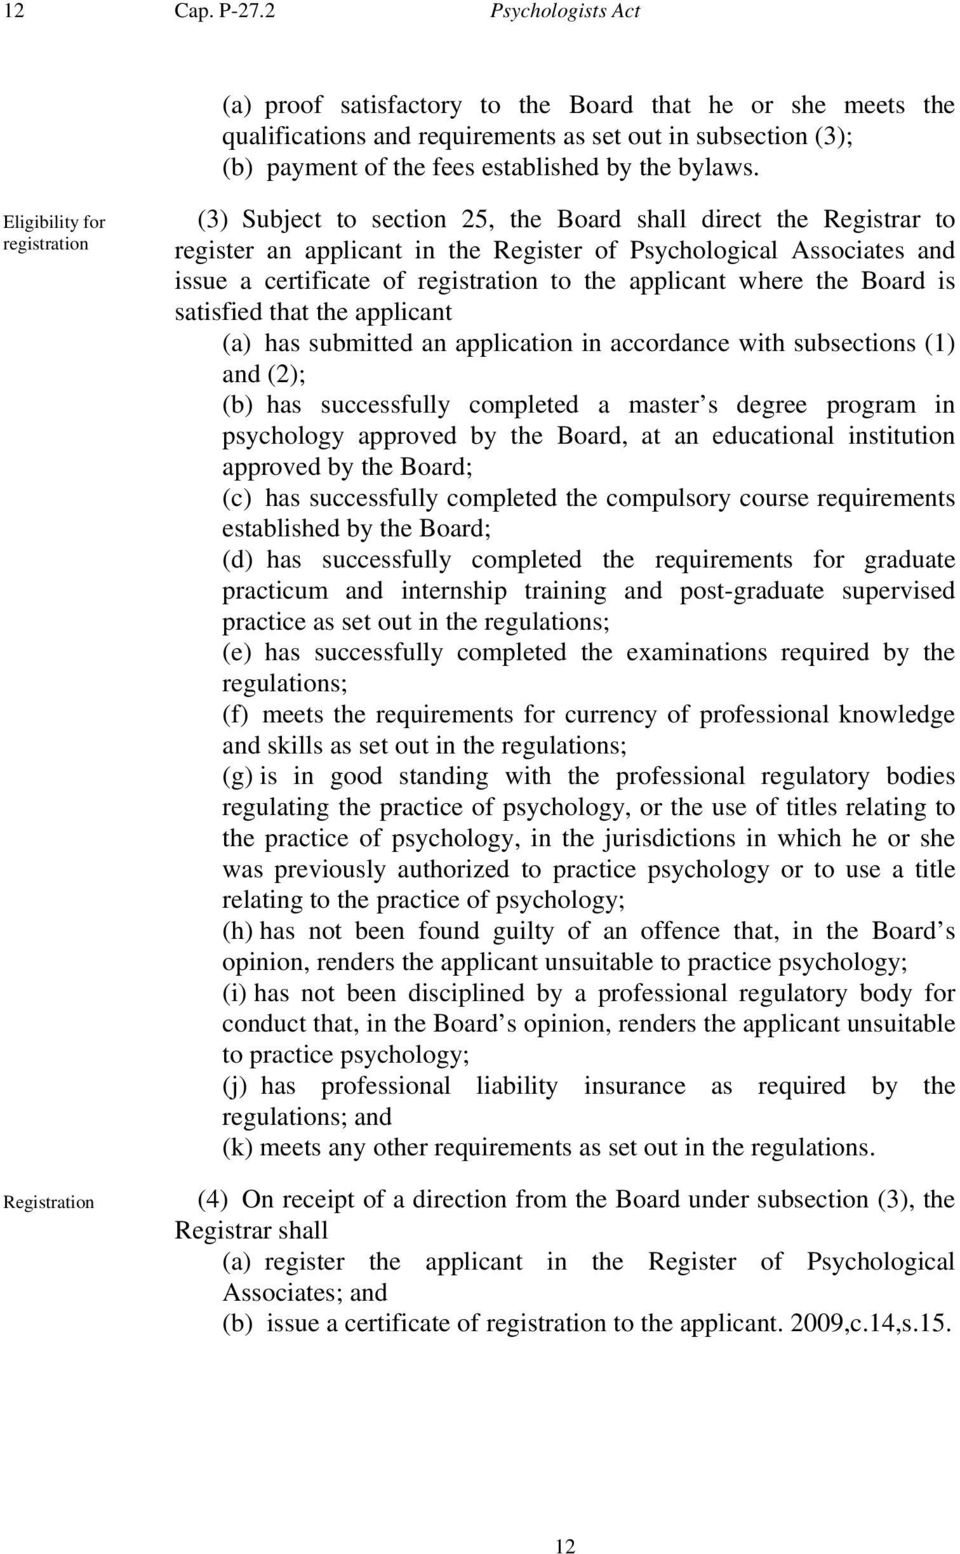 Eligibility for registration Registration (3) Subject to section 25, the Board shall direct the Registrar to register an applicant in the Register of Psychological Associates and issue a certificate